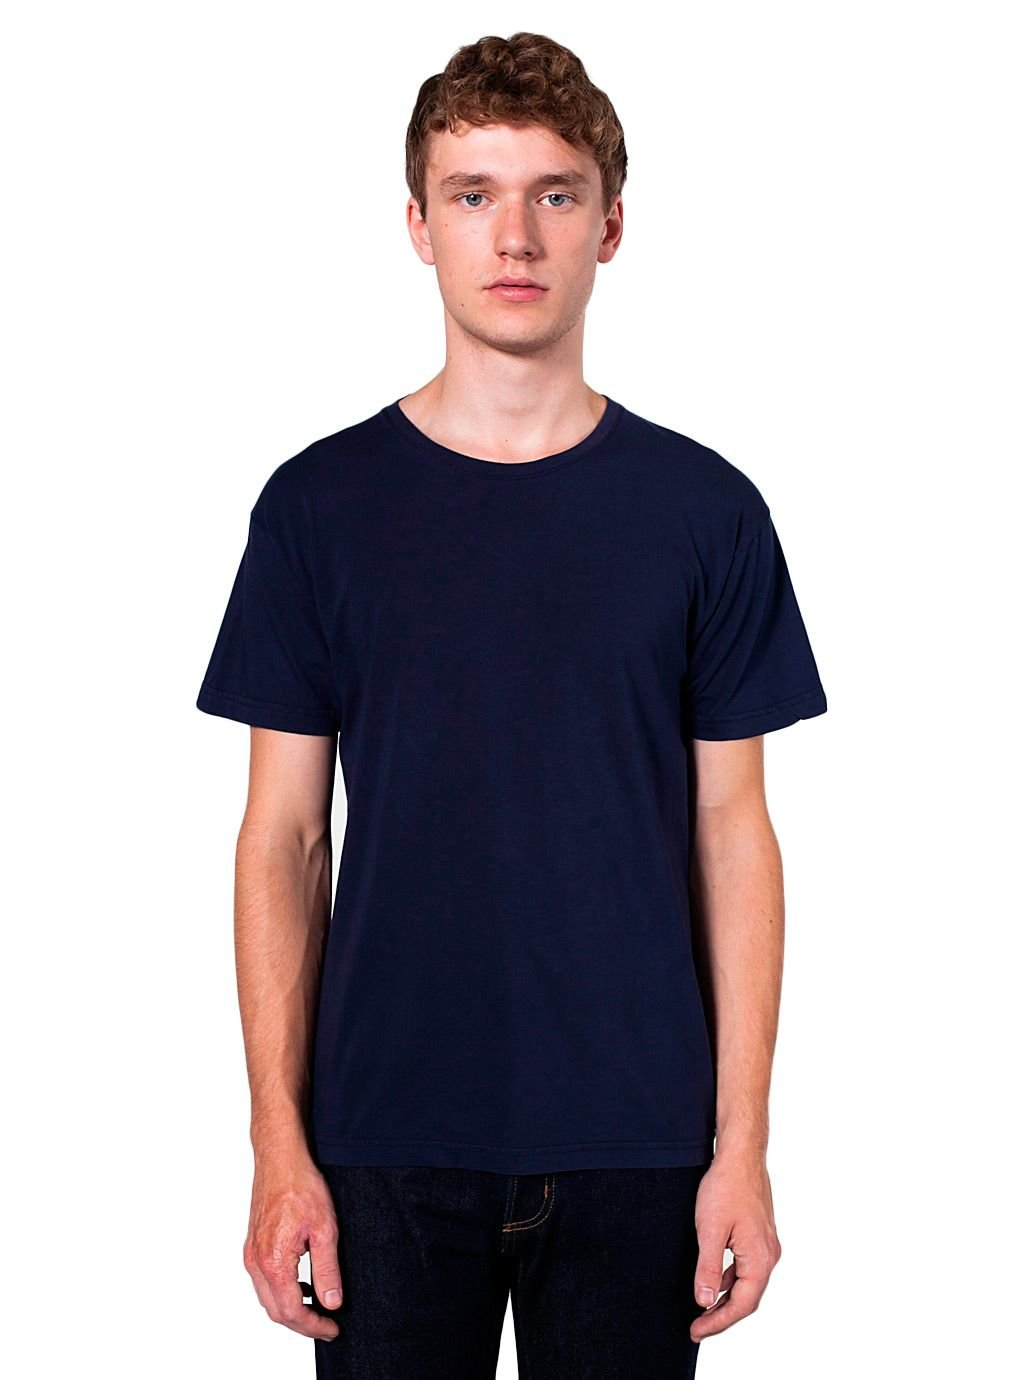 American Apparel Unisex Power Washed T-Shirt, Navy, X-Large